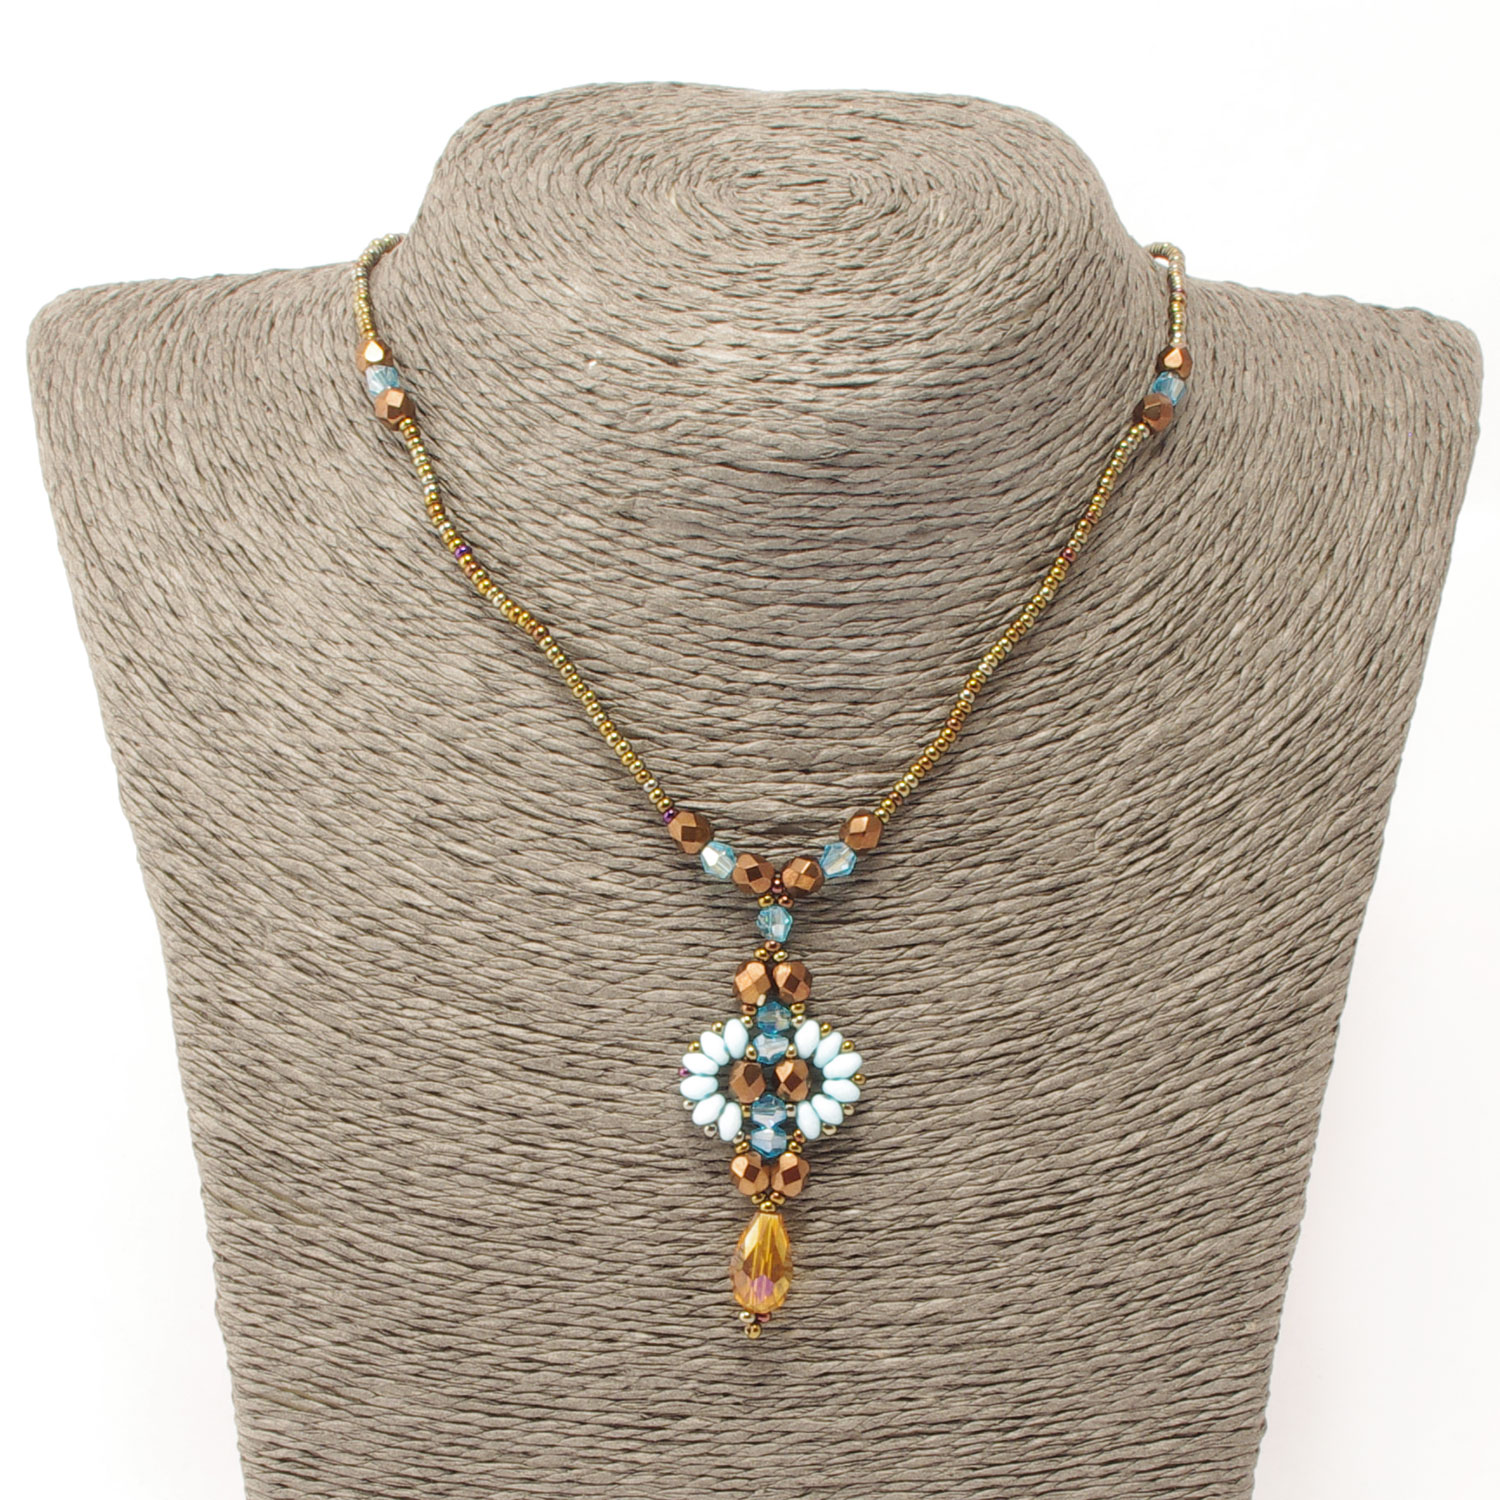 Quetzal Necklace in turquoise brown